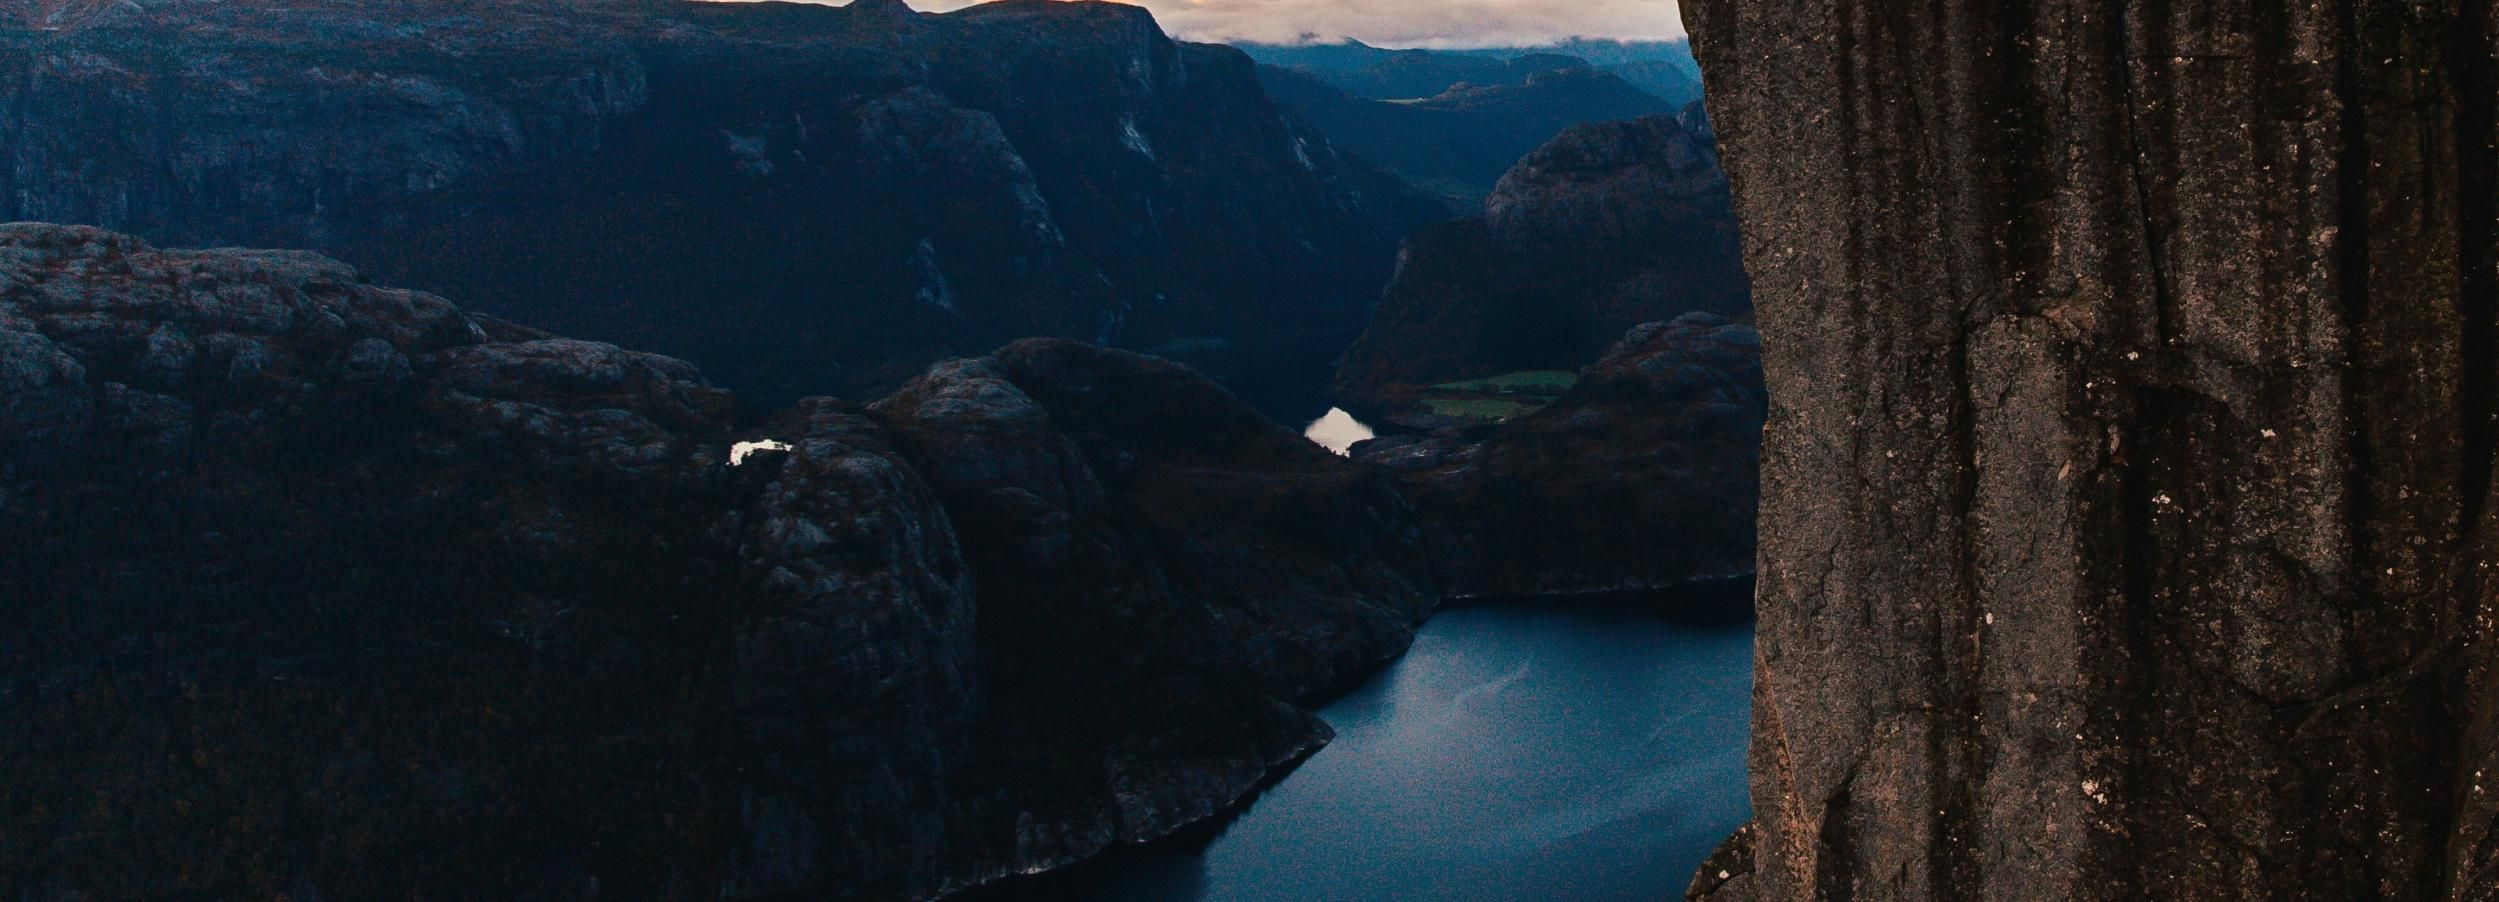 Stavanger: Guided Sunrise Hike to Pulpit Rock